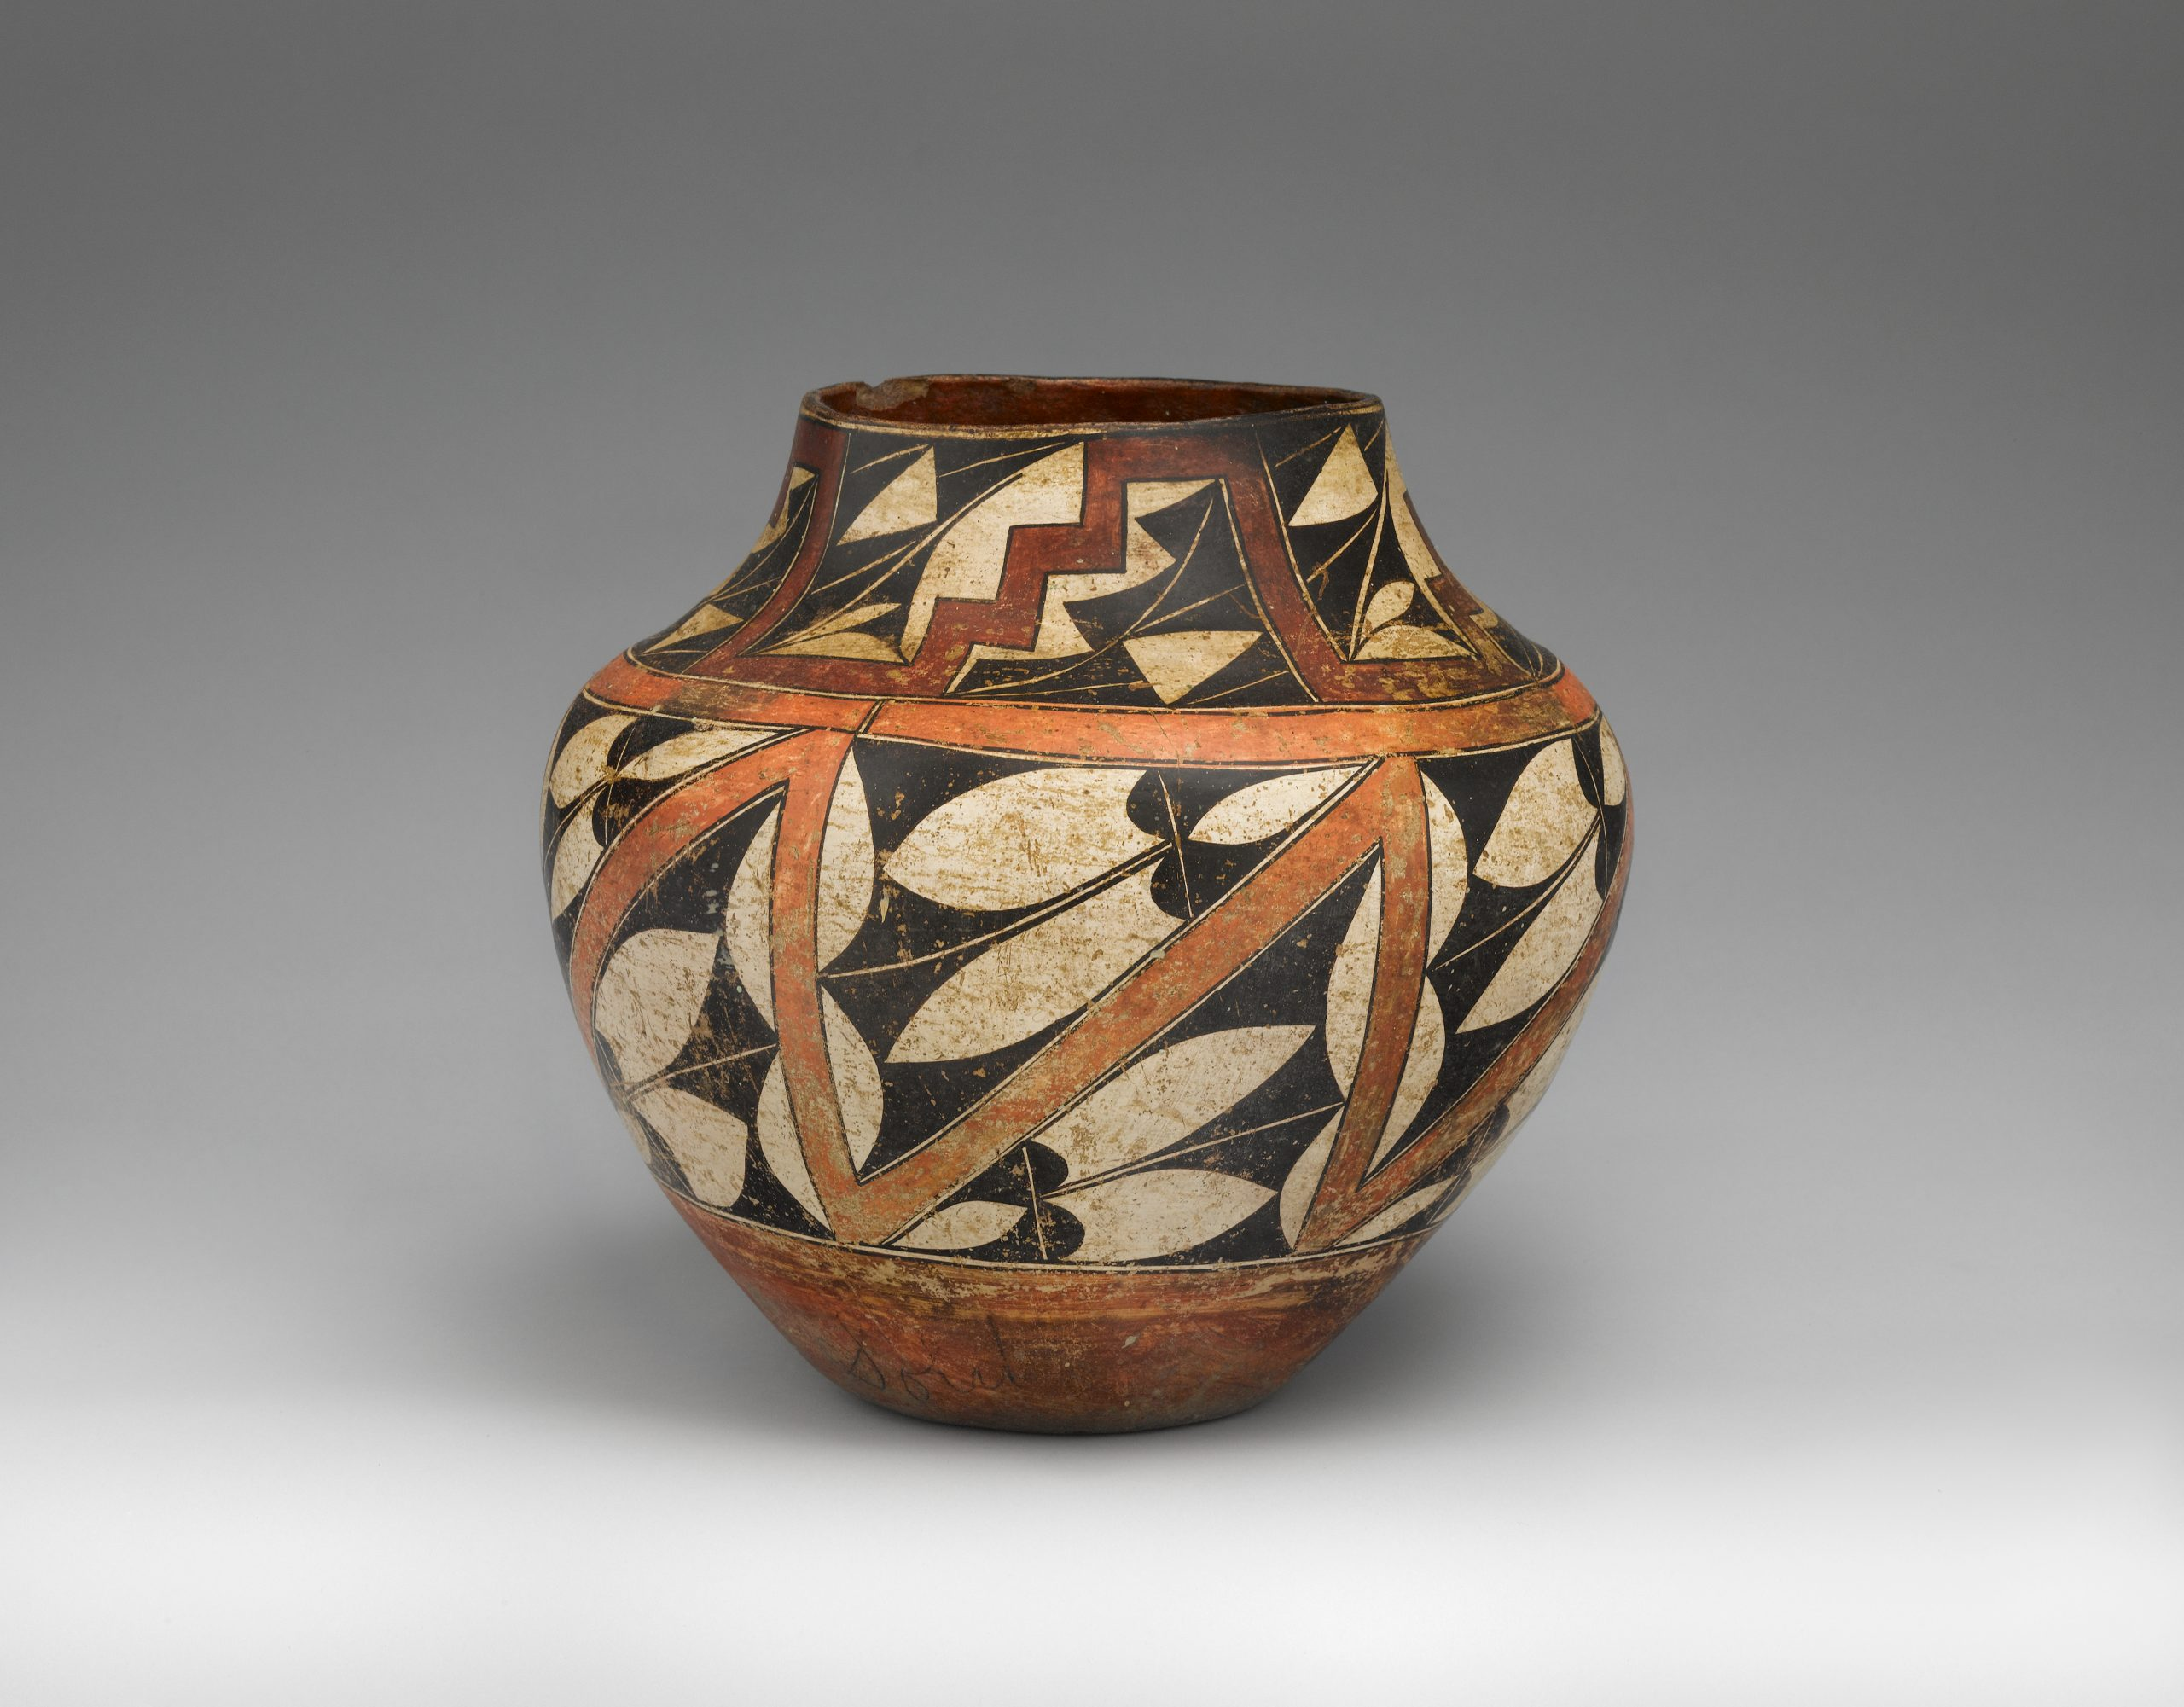 An Acoma pot decorated in white, red, orange, and black geometric shapes.